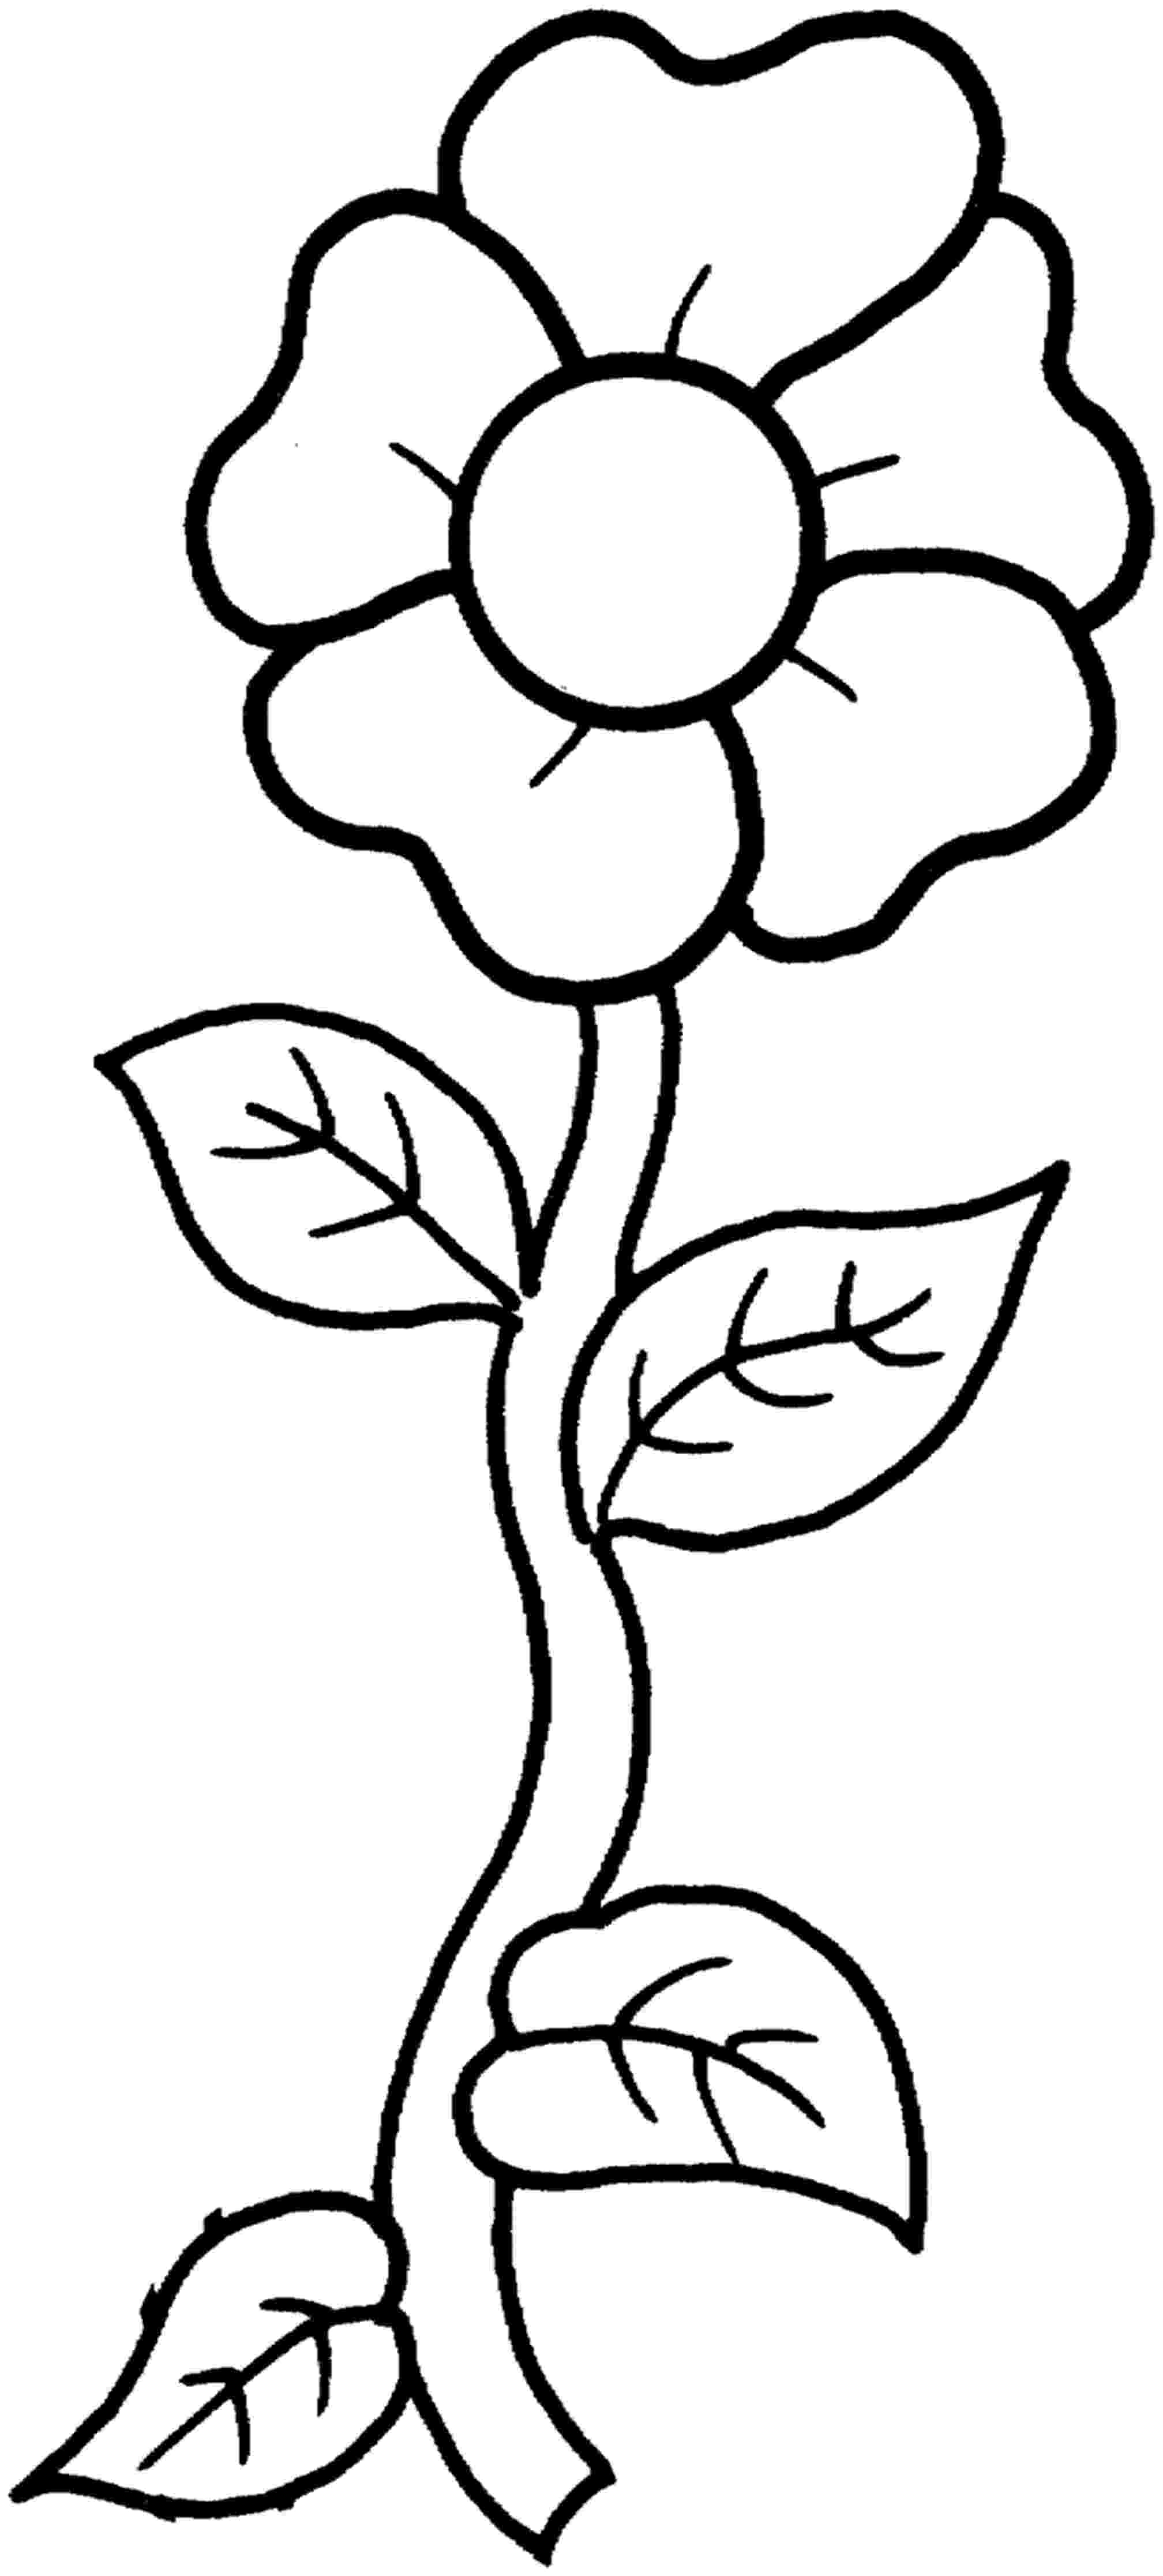 coloring flowers free printable flower coloring pages for kids best coloring flowers